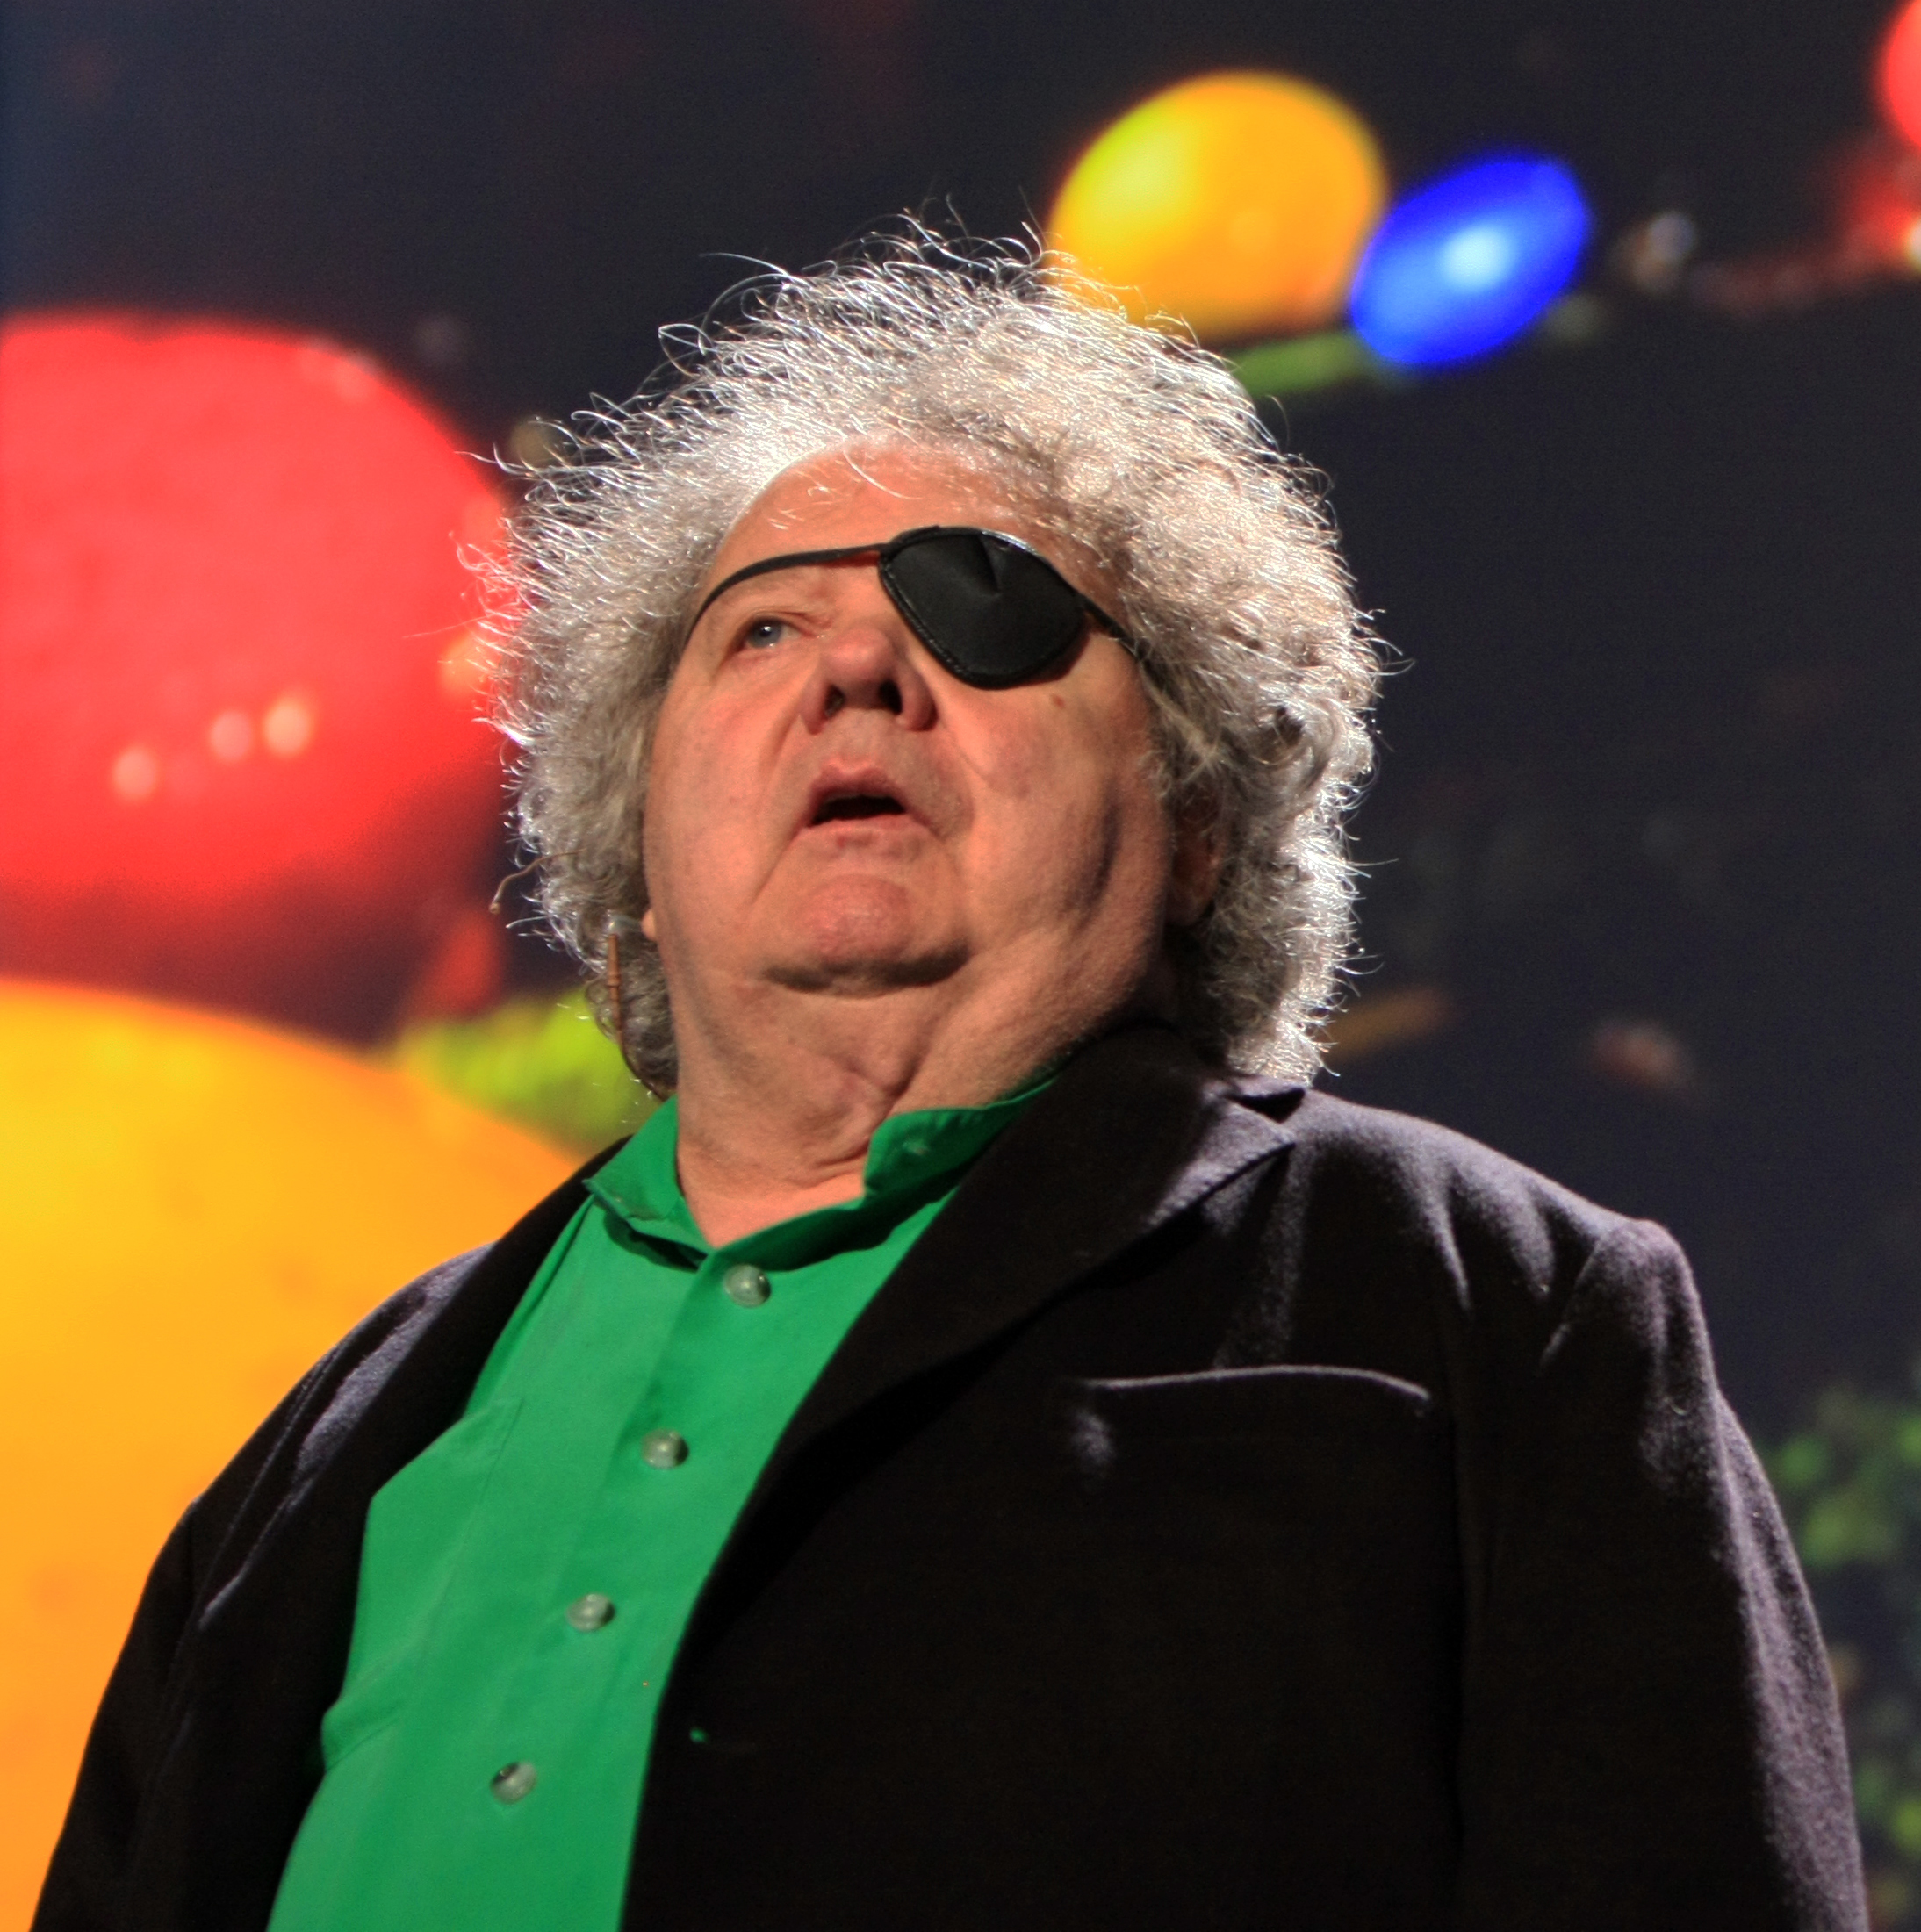 Image of Dale Chihuly from Wikidata